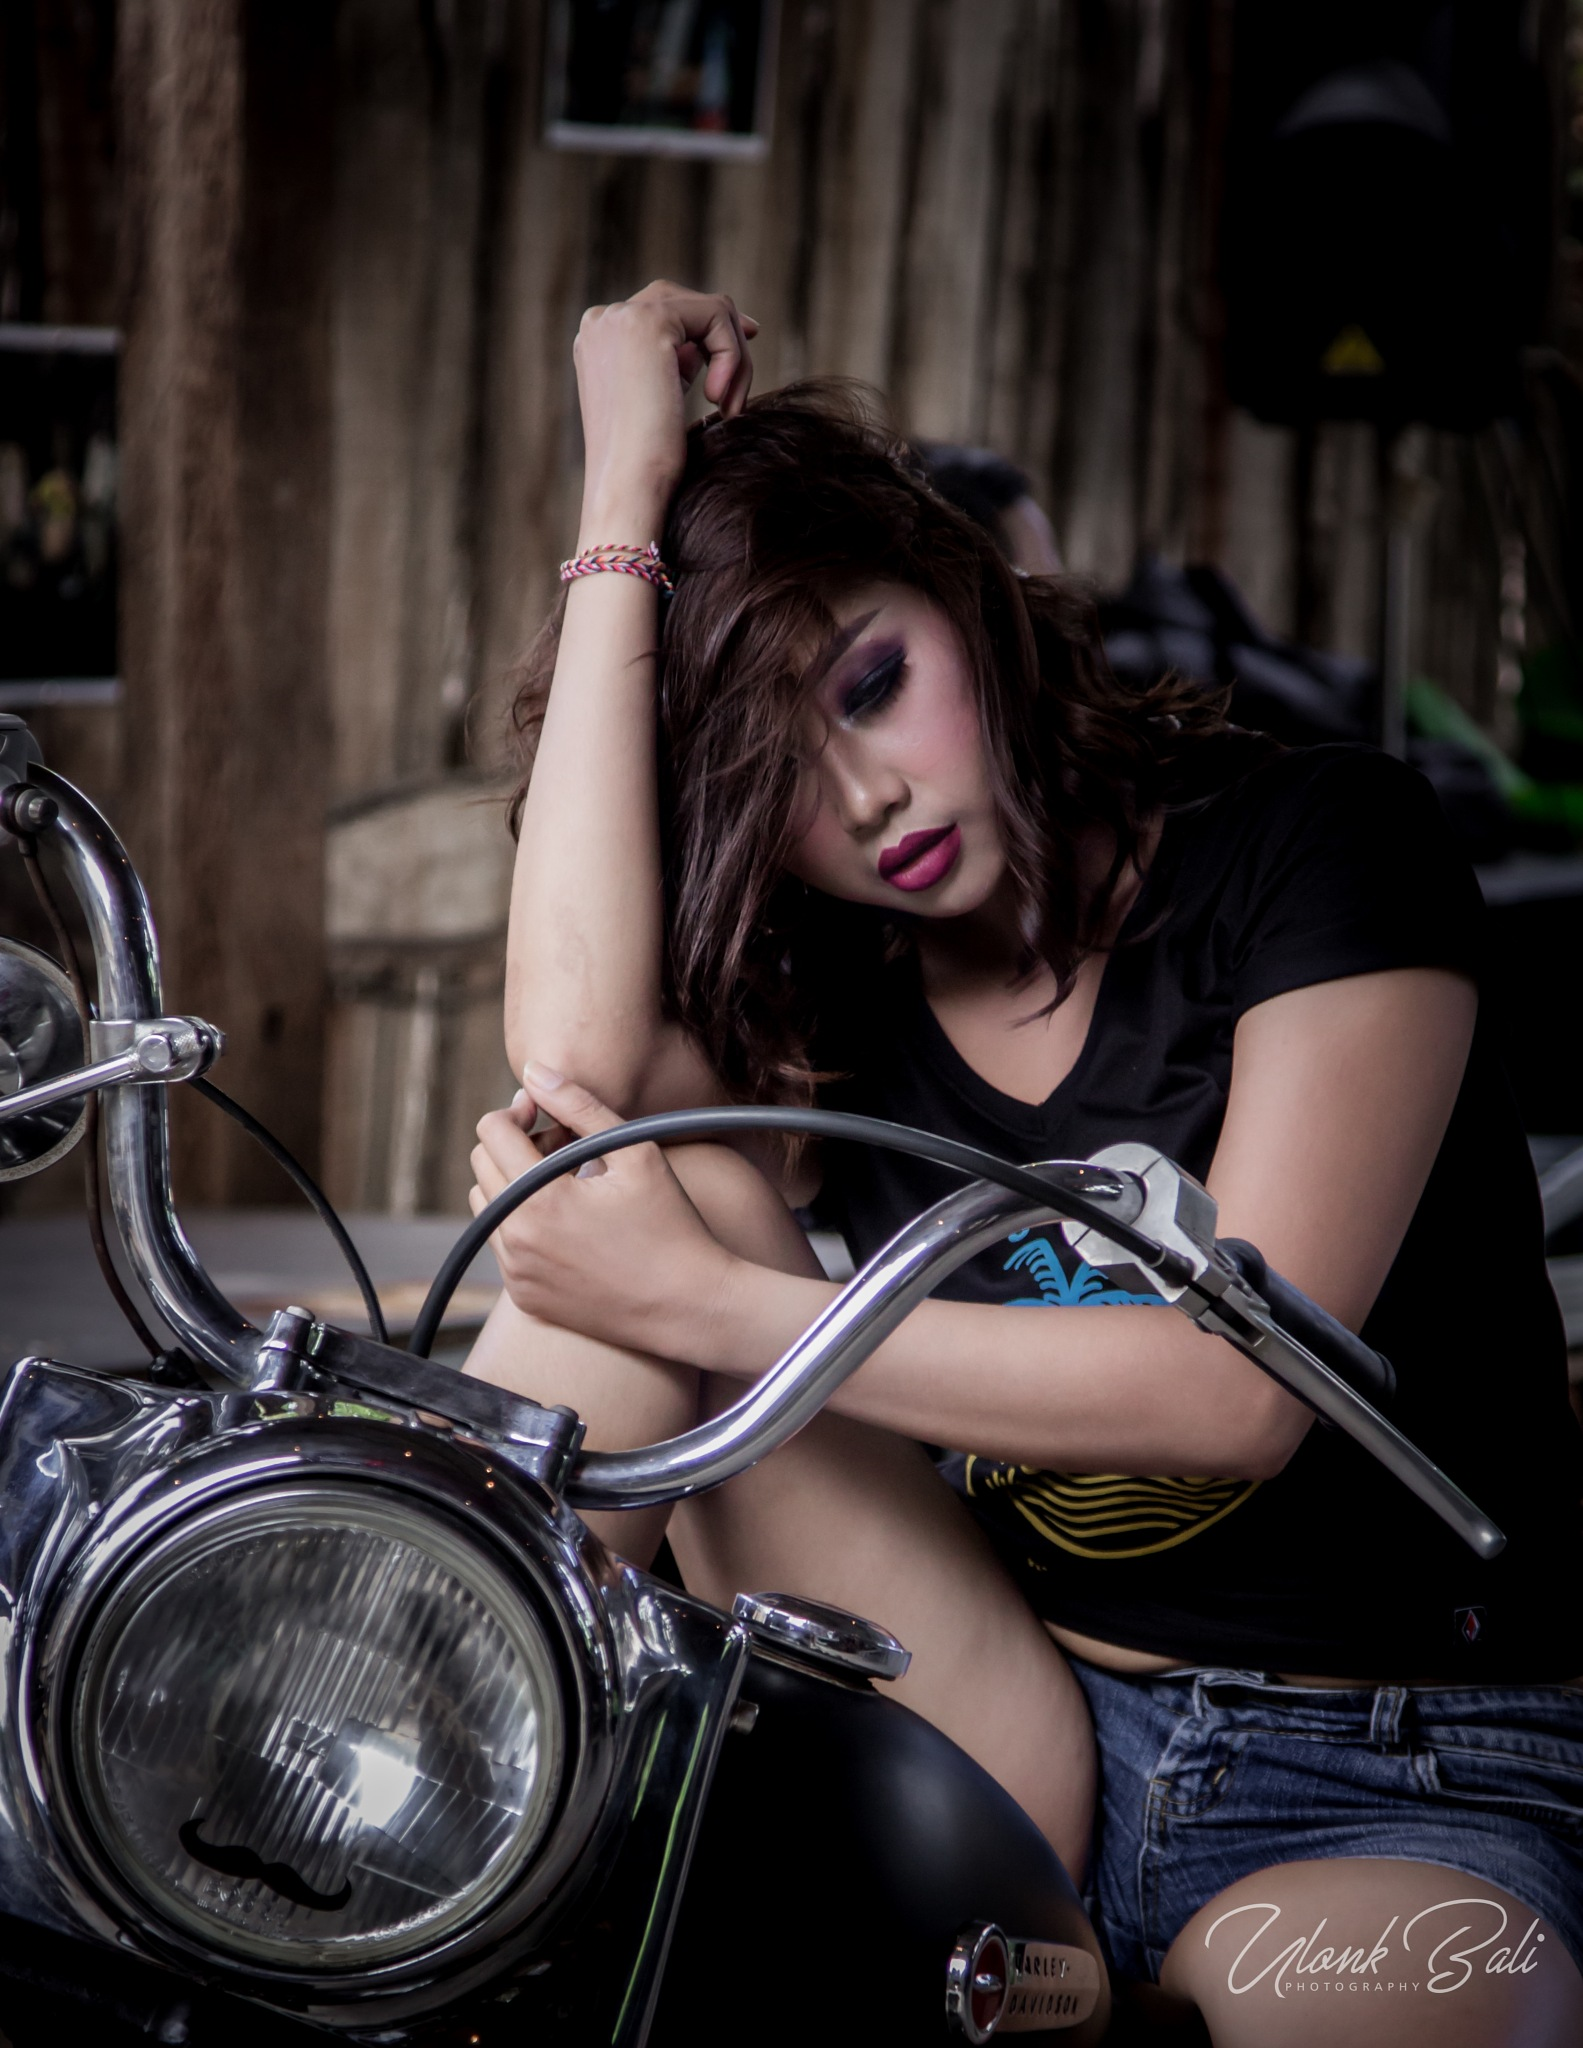 beauty on garage by Ulonk Bali Photography